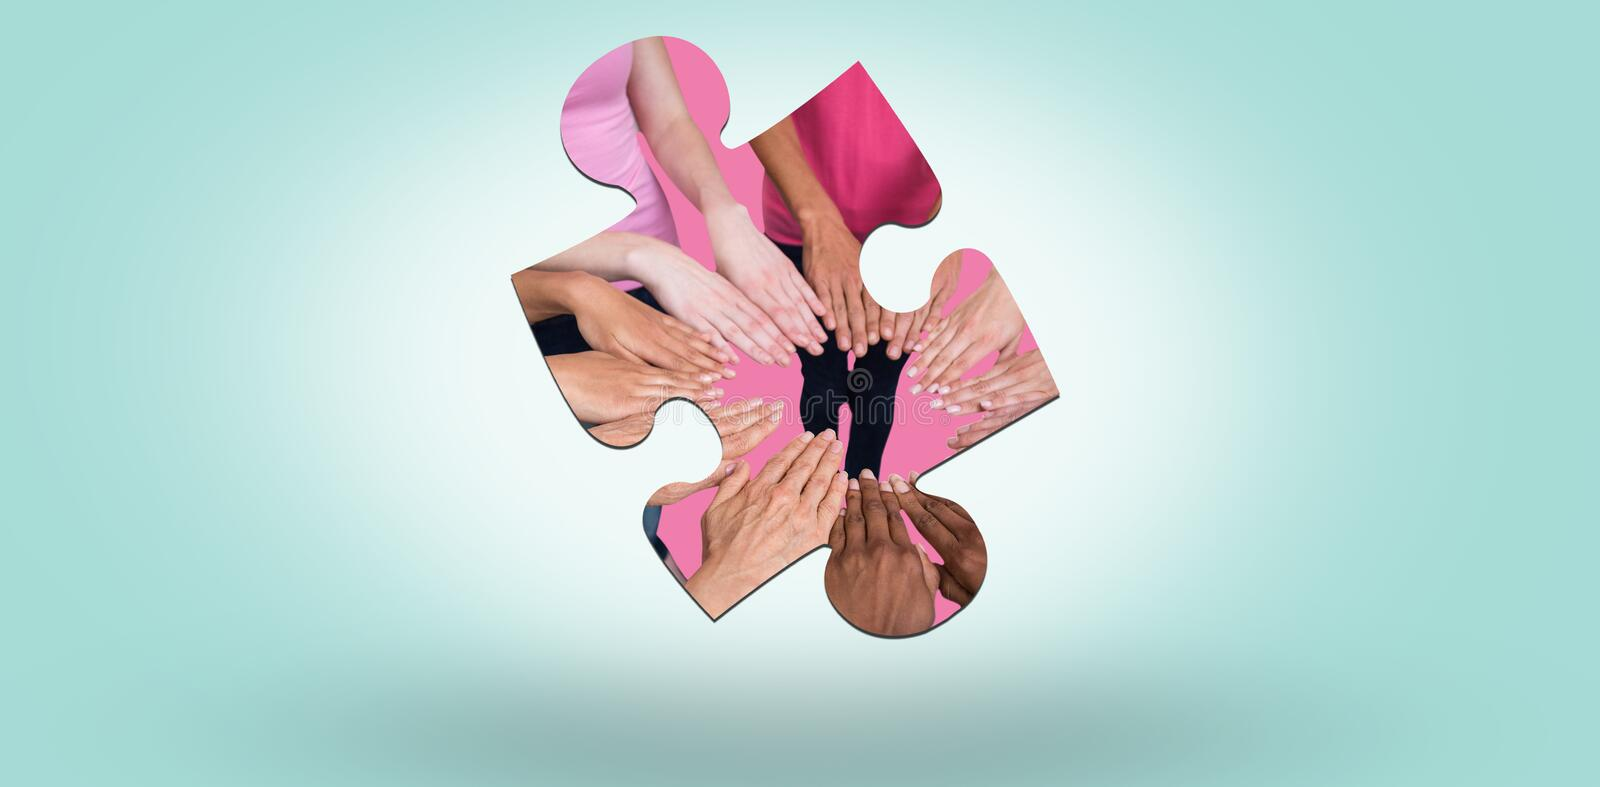 Composite image of women in pink outfits joining in a circle for breast cancer awareness. Women in pink outfits joining in a circle for breast cancer awareness stock illustration